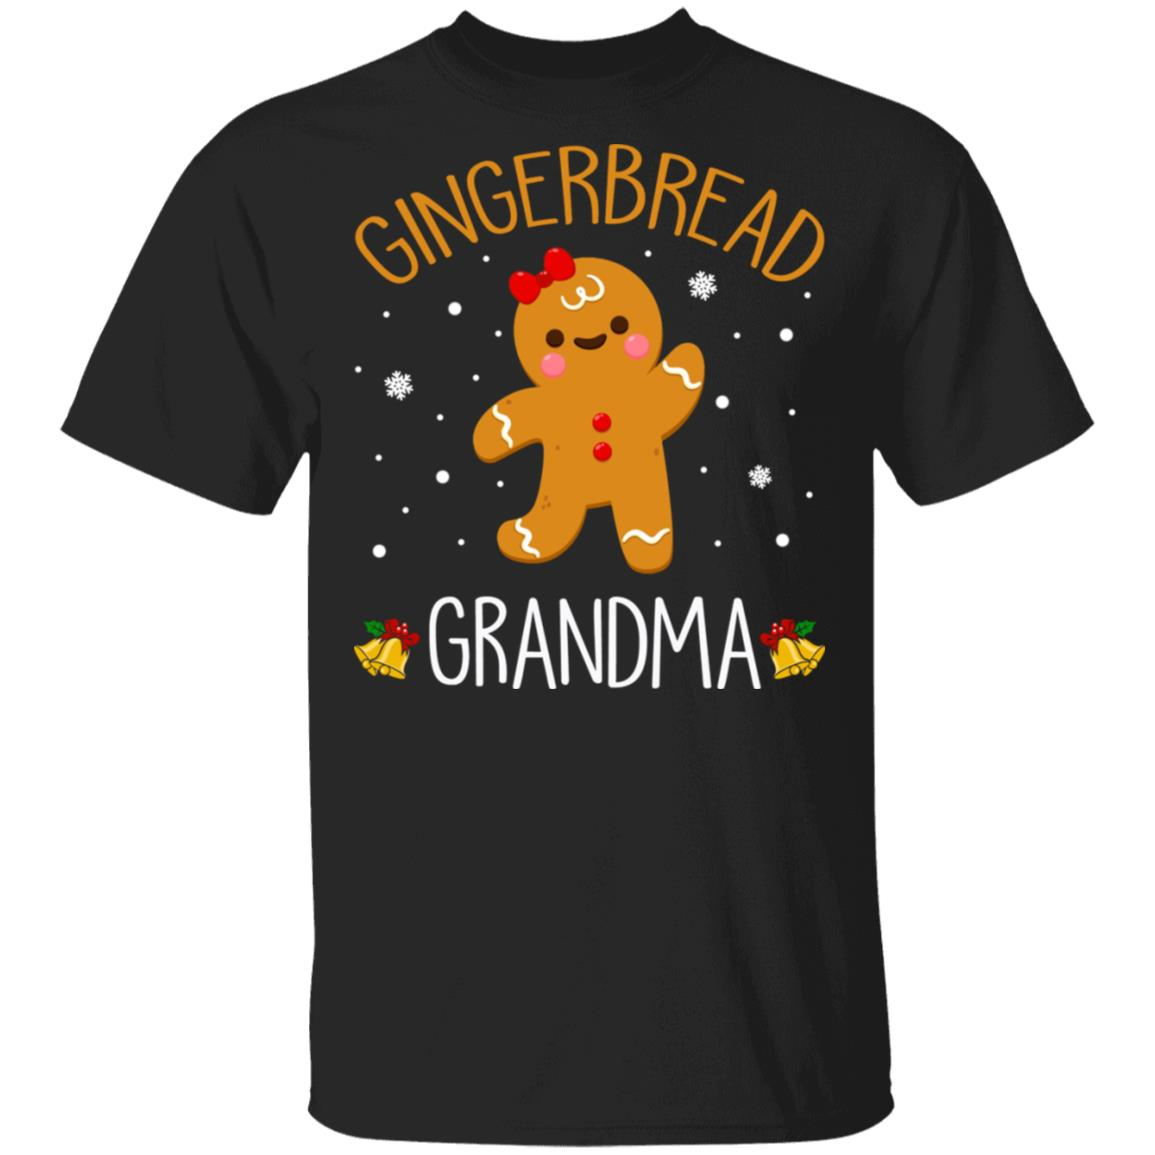 Xmas Gingerbread Men Grandma Christmas Family Unisex Short Sleeve